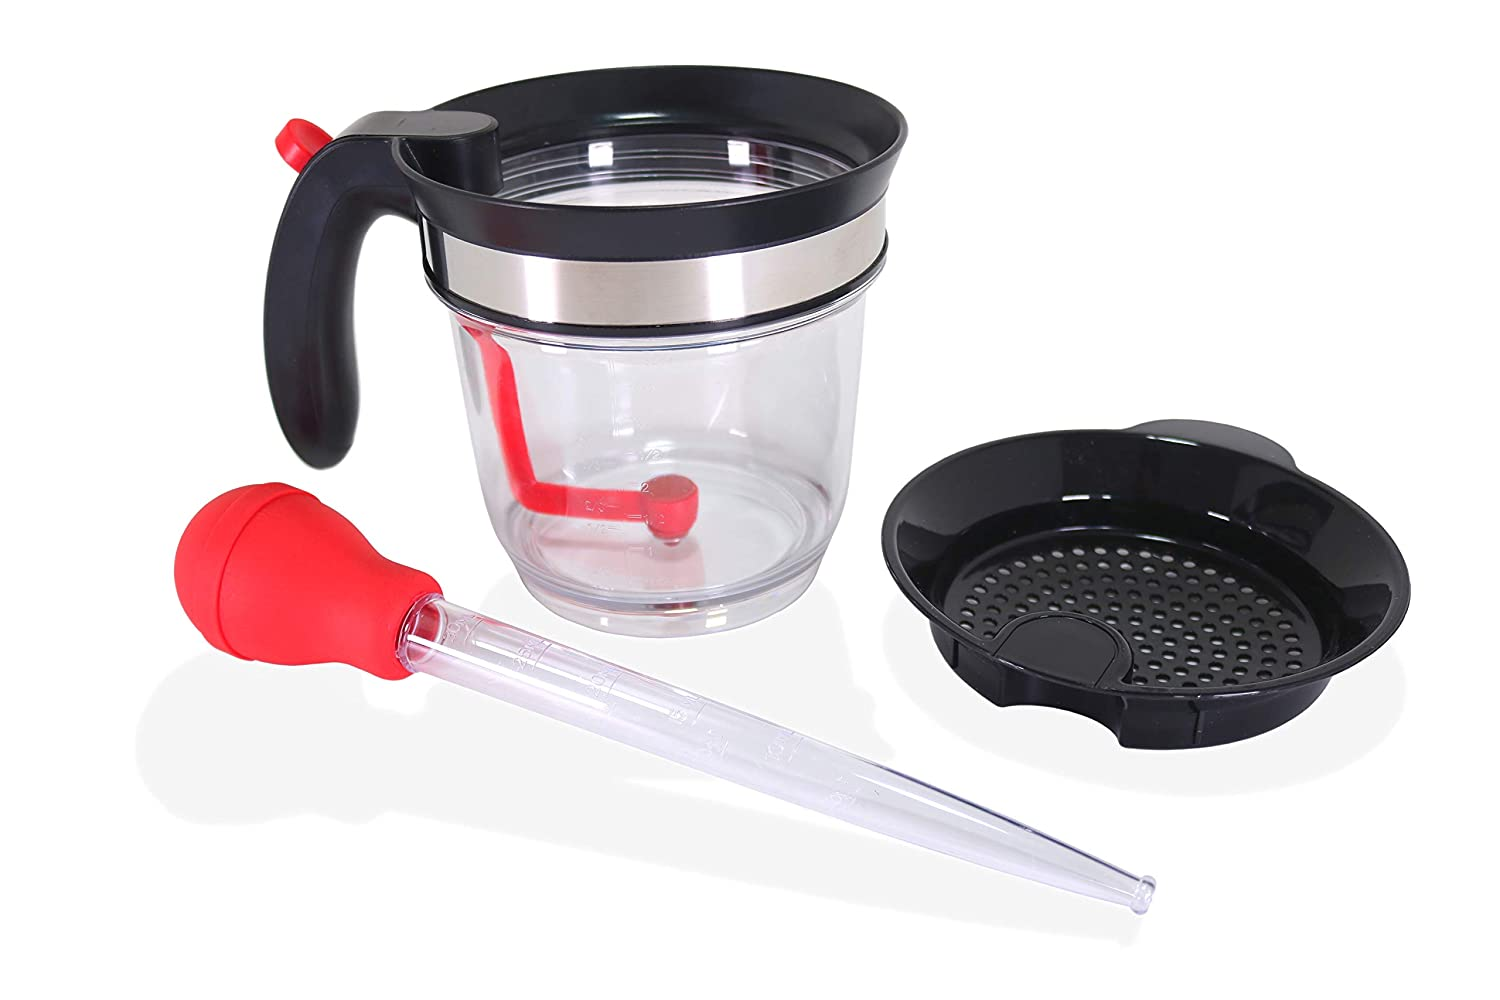 Wecker 4 Cup Fat and Gravy Separator Strainer Measuring 1 Liter with Bottom Release Dispense Button Complete with Turkey Baster